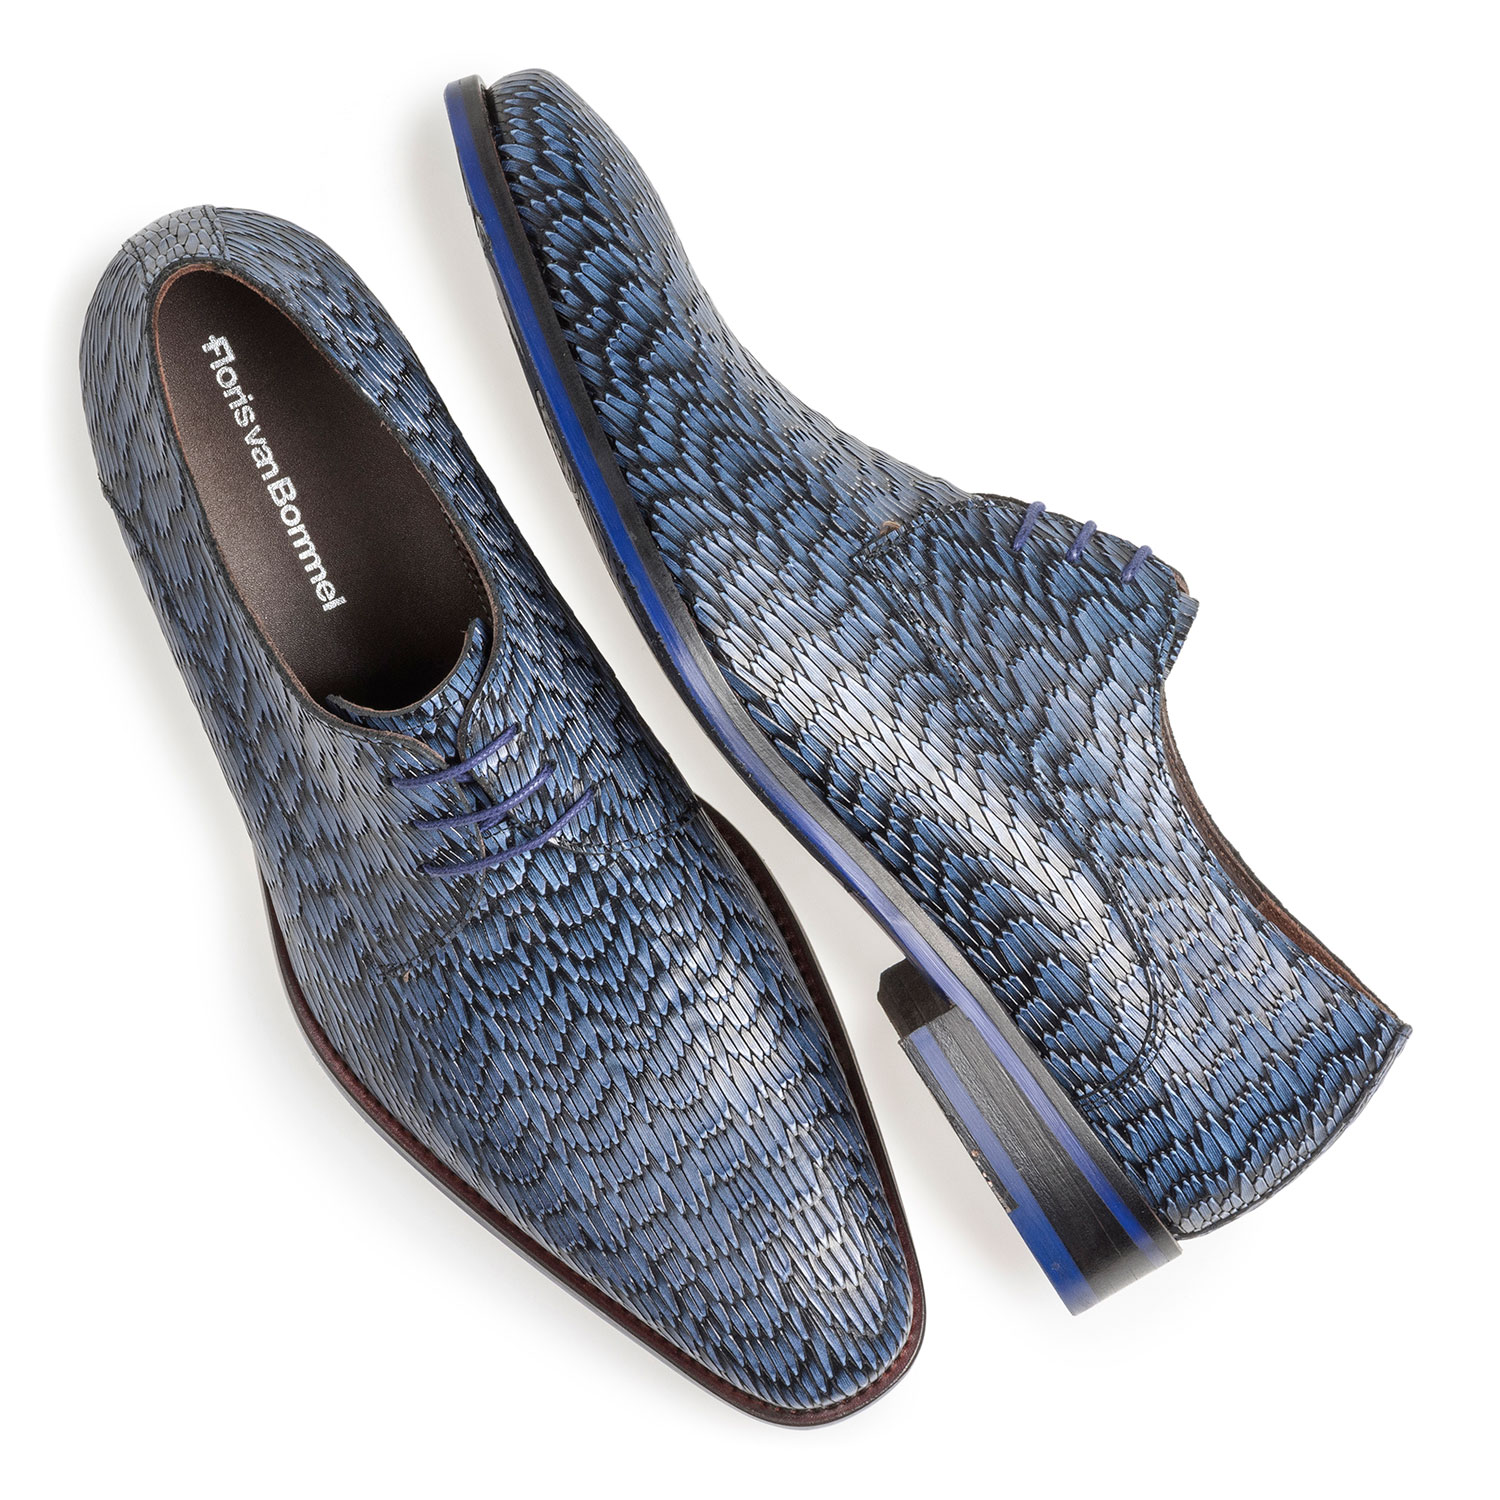 18159/21 - Blue leather lace shoe with print